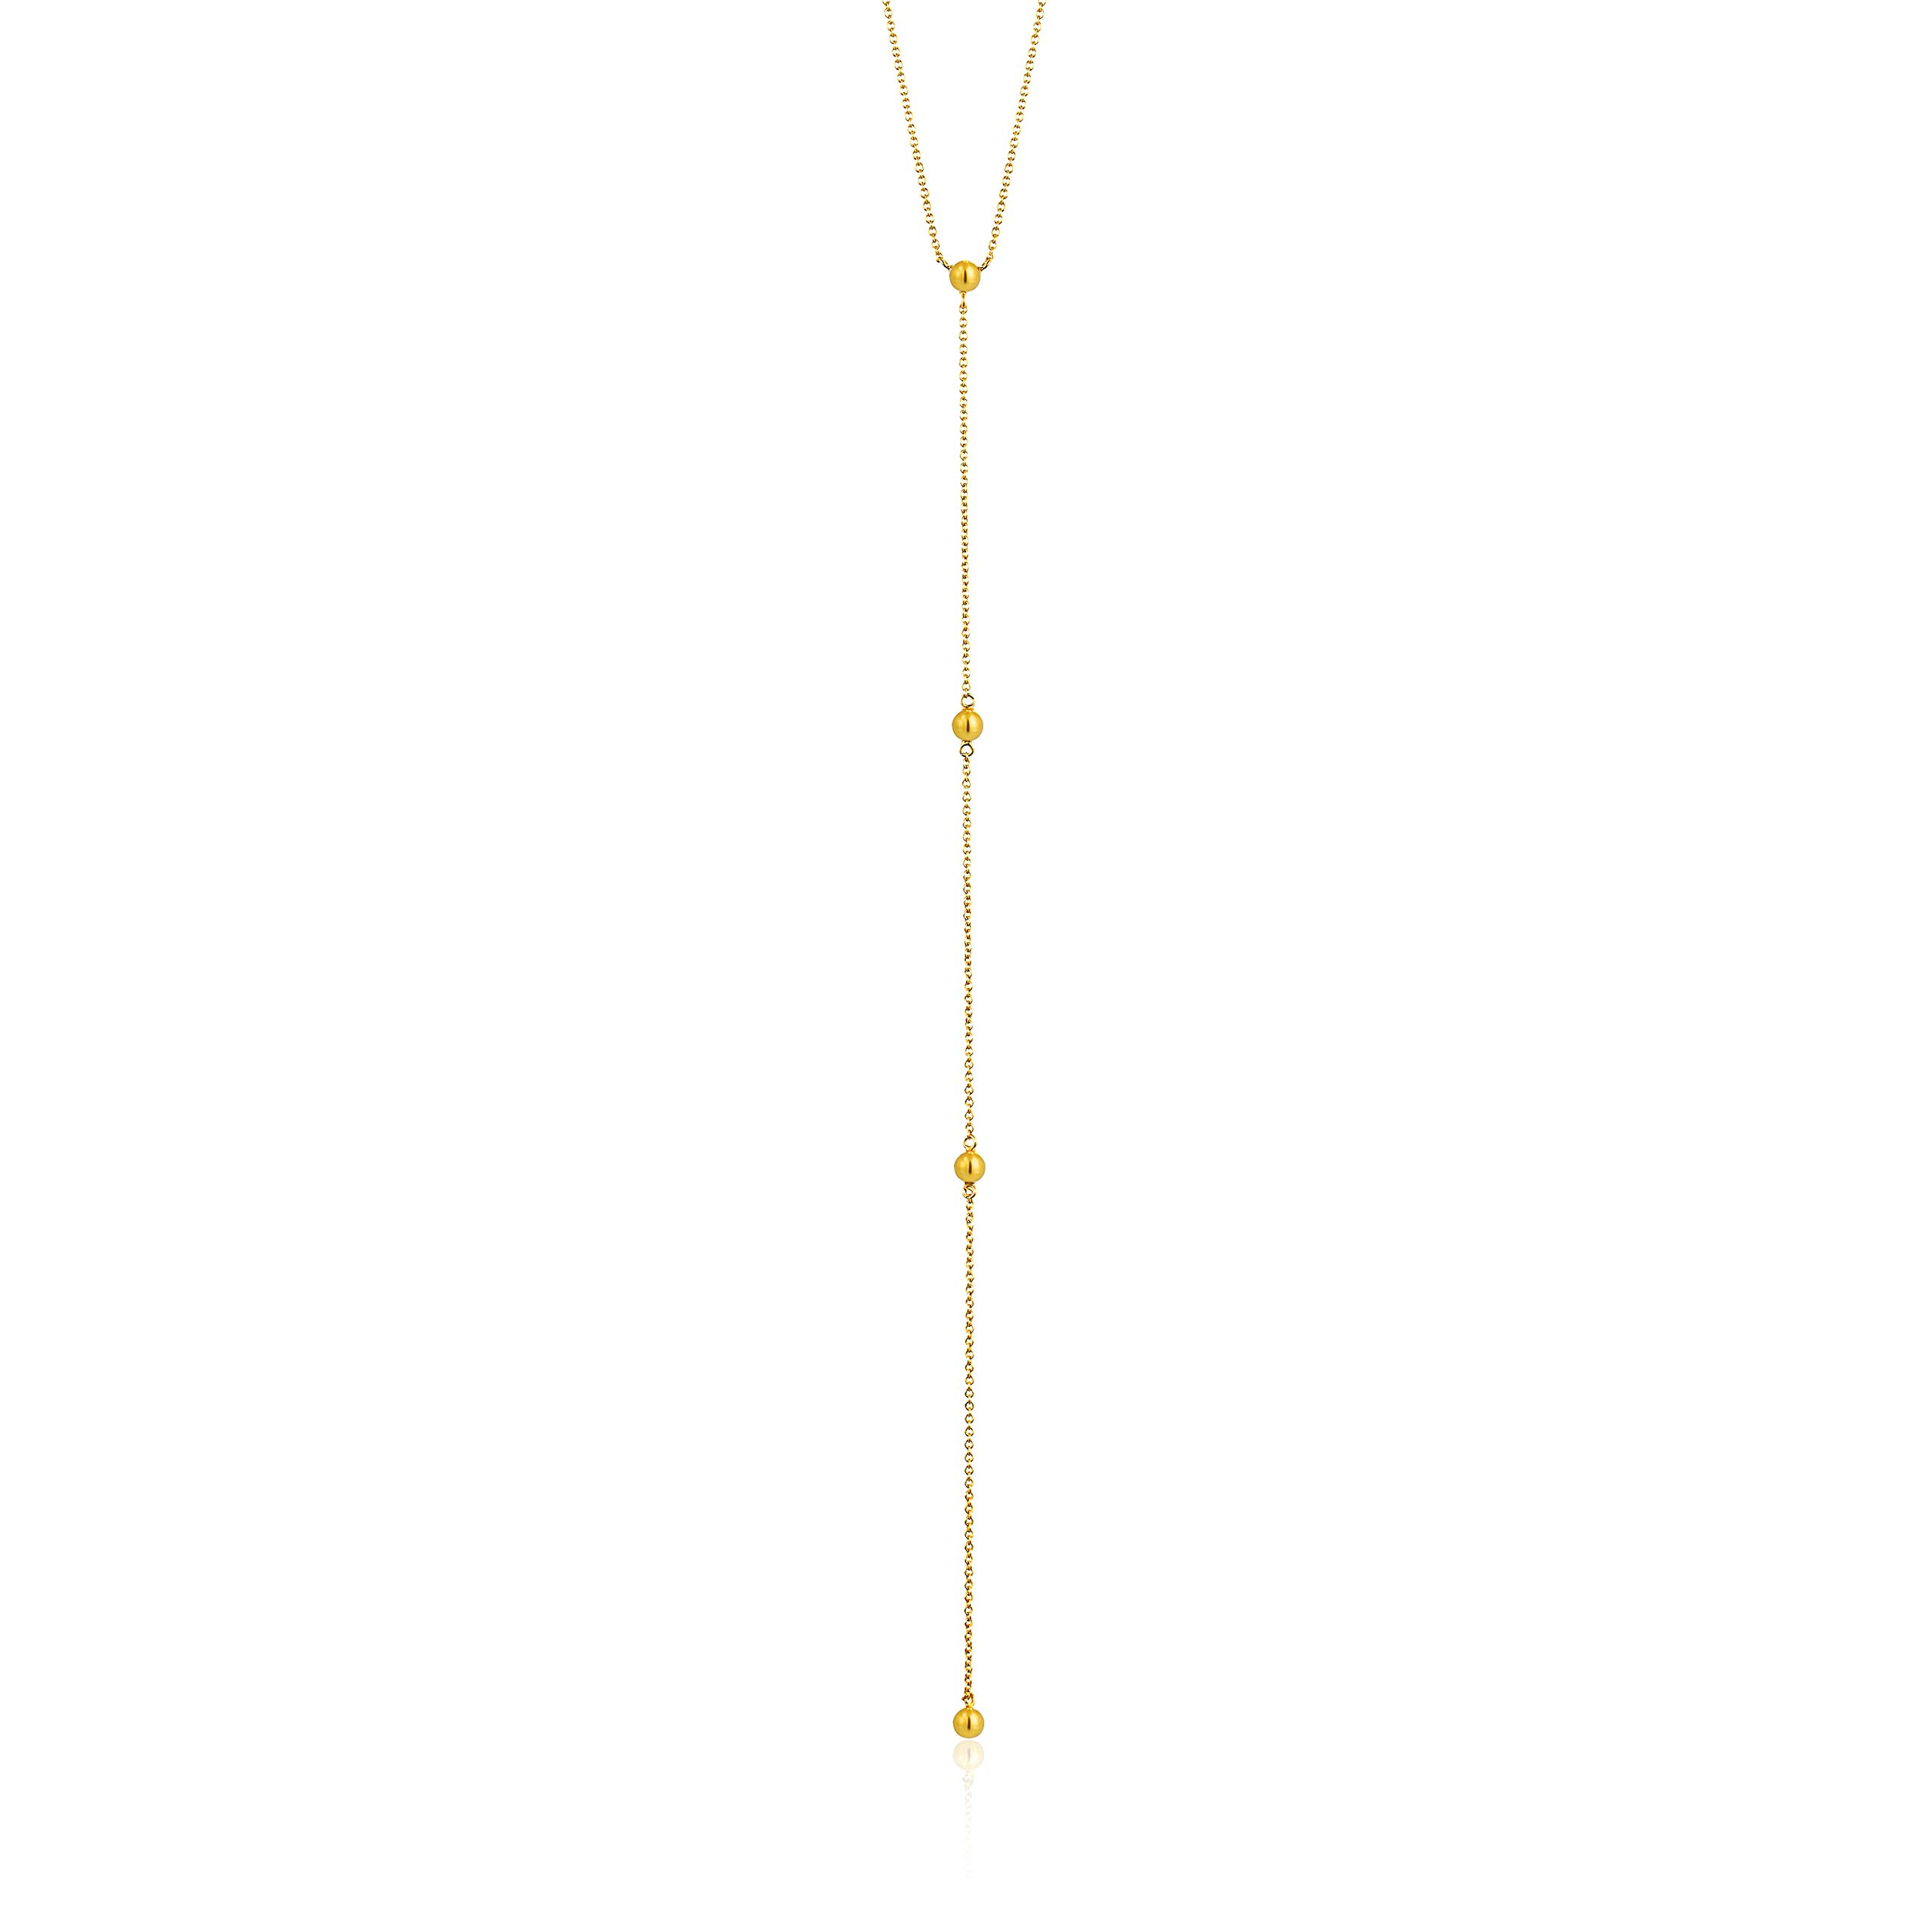 925 Sterling Silver Long Bohemin Drop Lariat Layer Y-Necklace for Women, 14K Yellow Gold Plated by ANIA HAIE